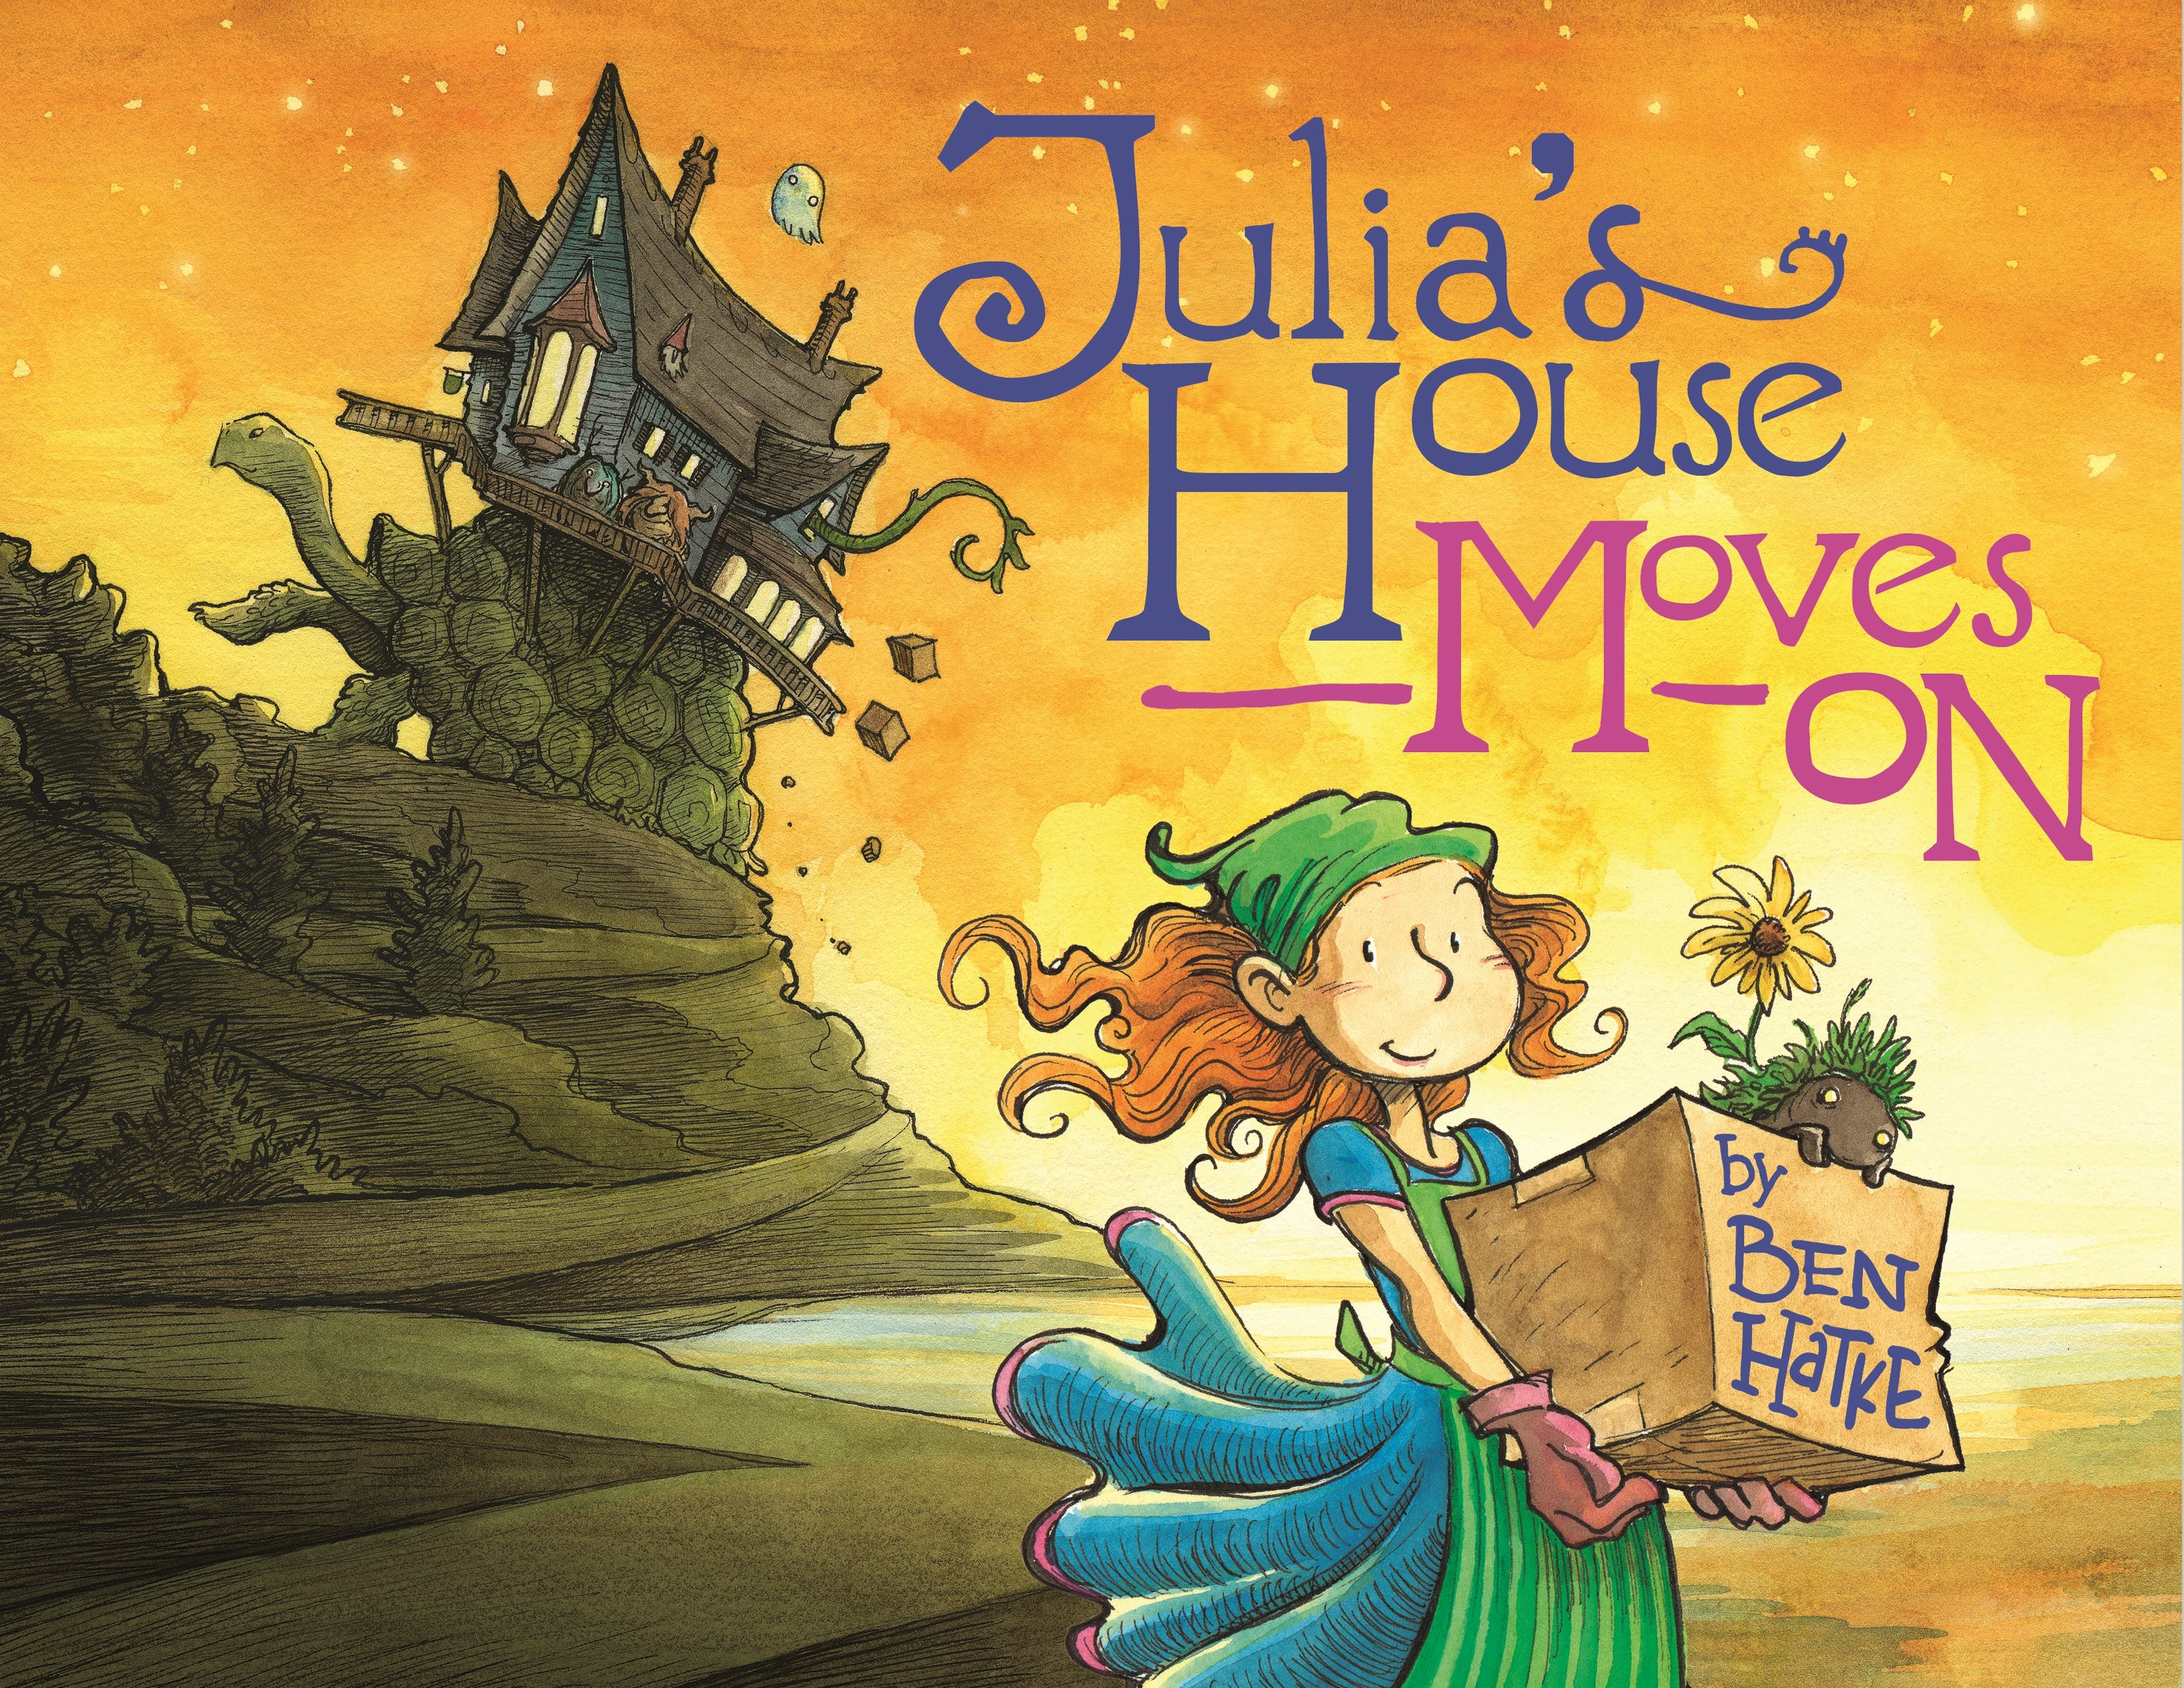 Image of Julia's House Moves On